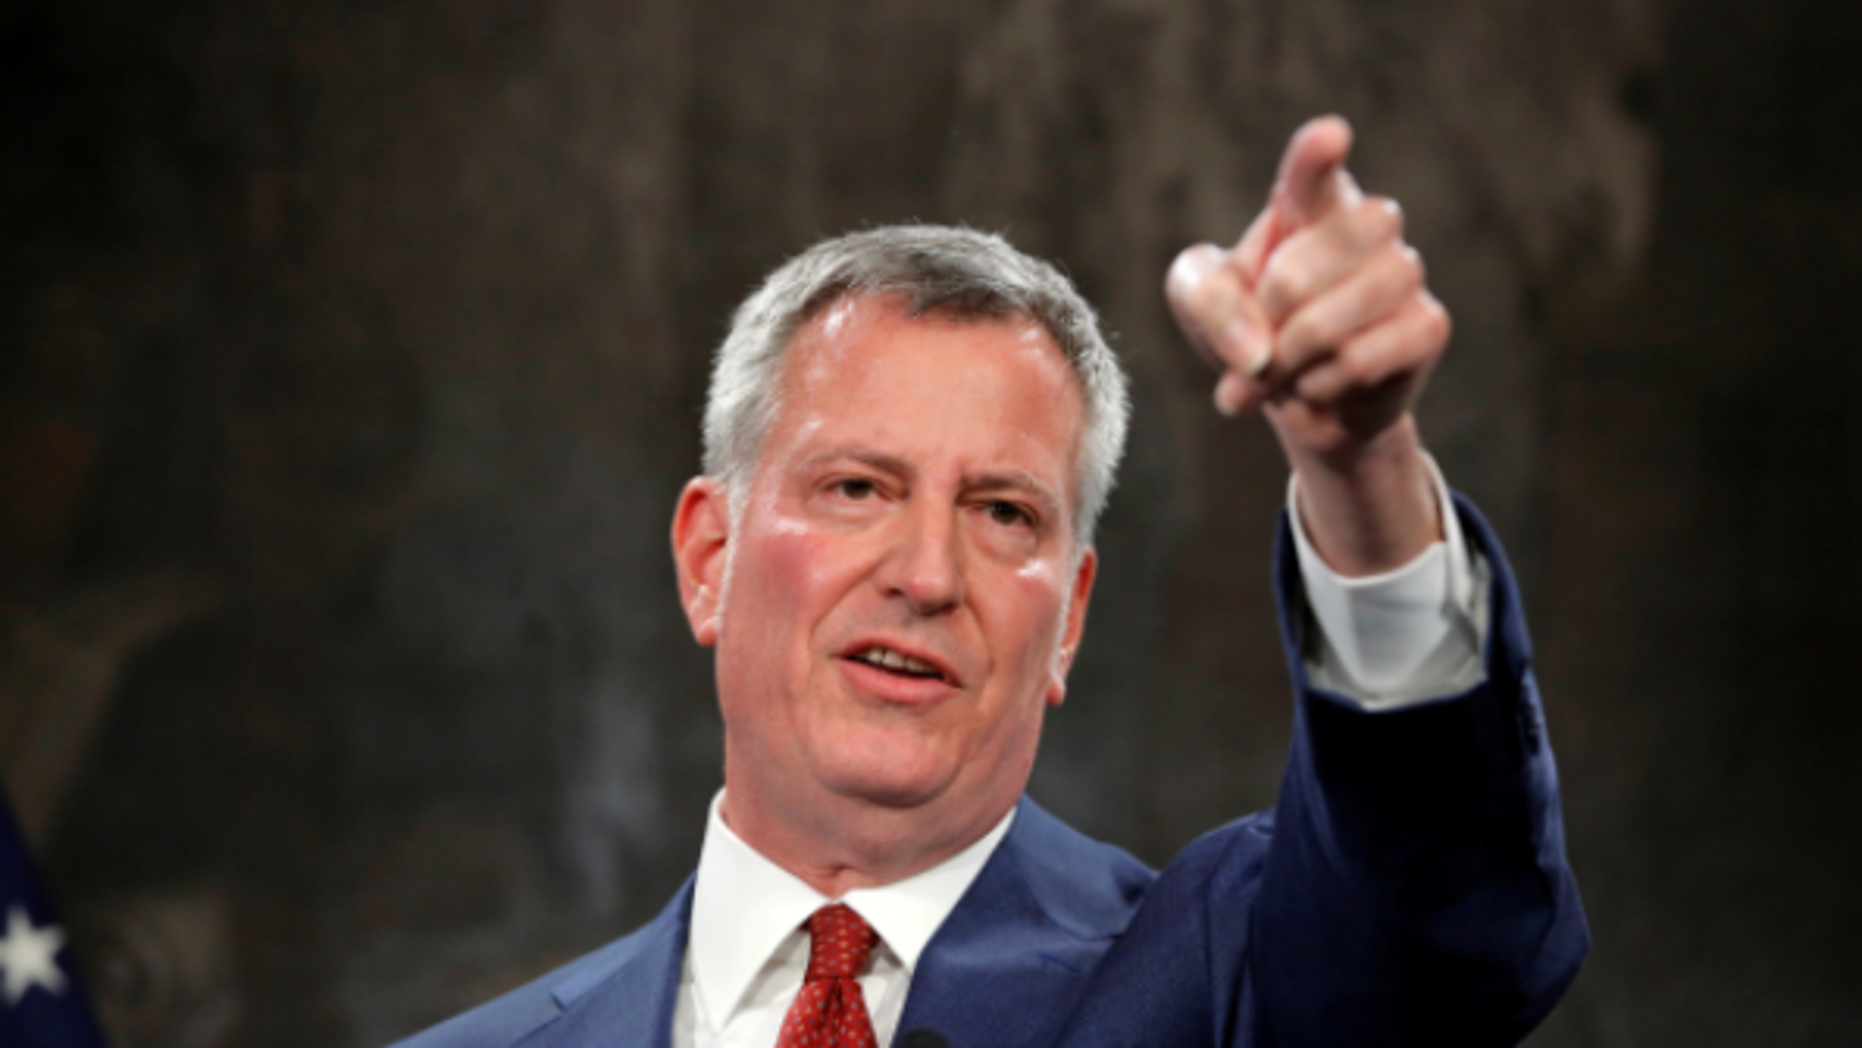 NYC Mayor Bill de Blasio used personal email for city business, according to a new report.